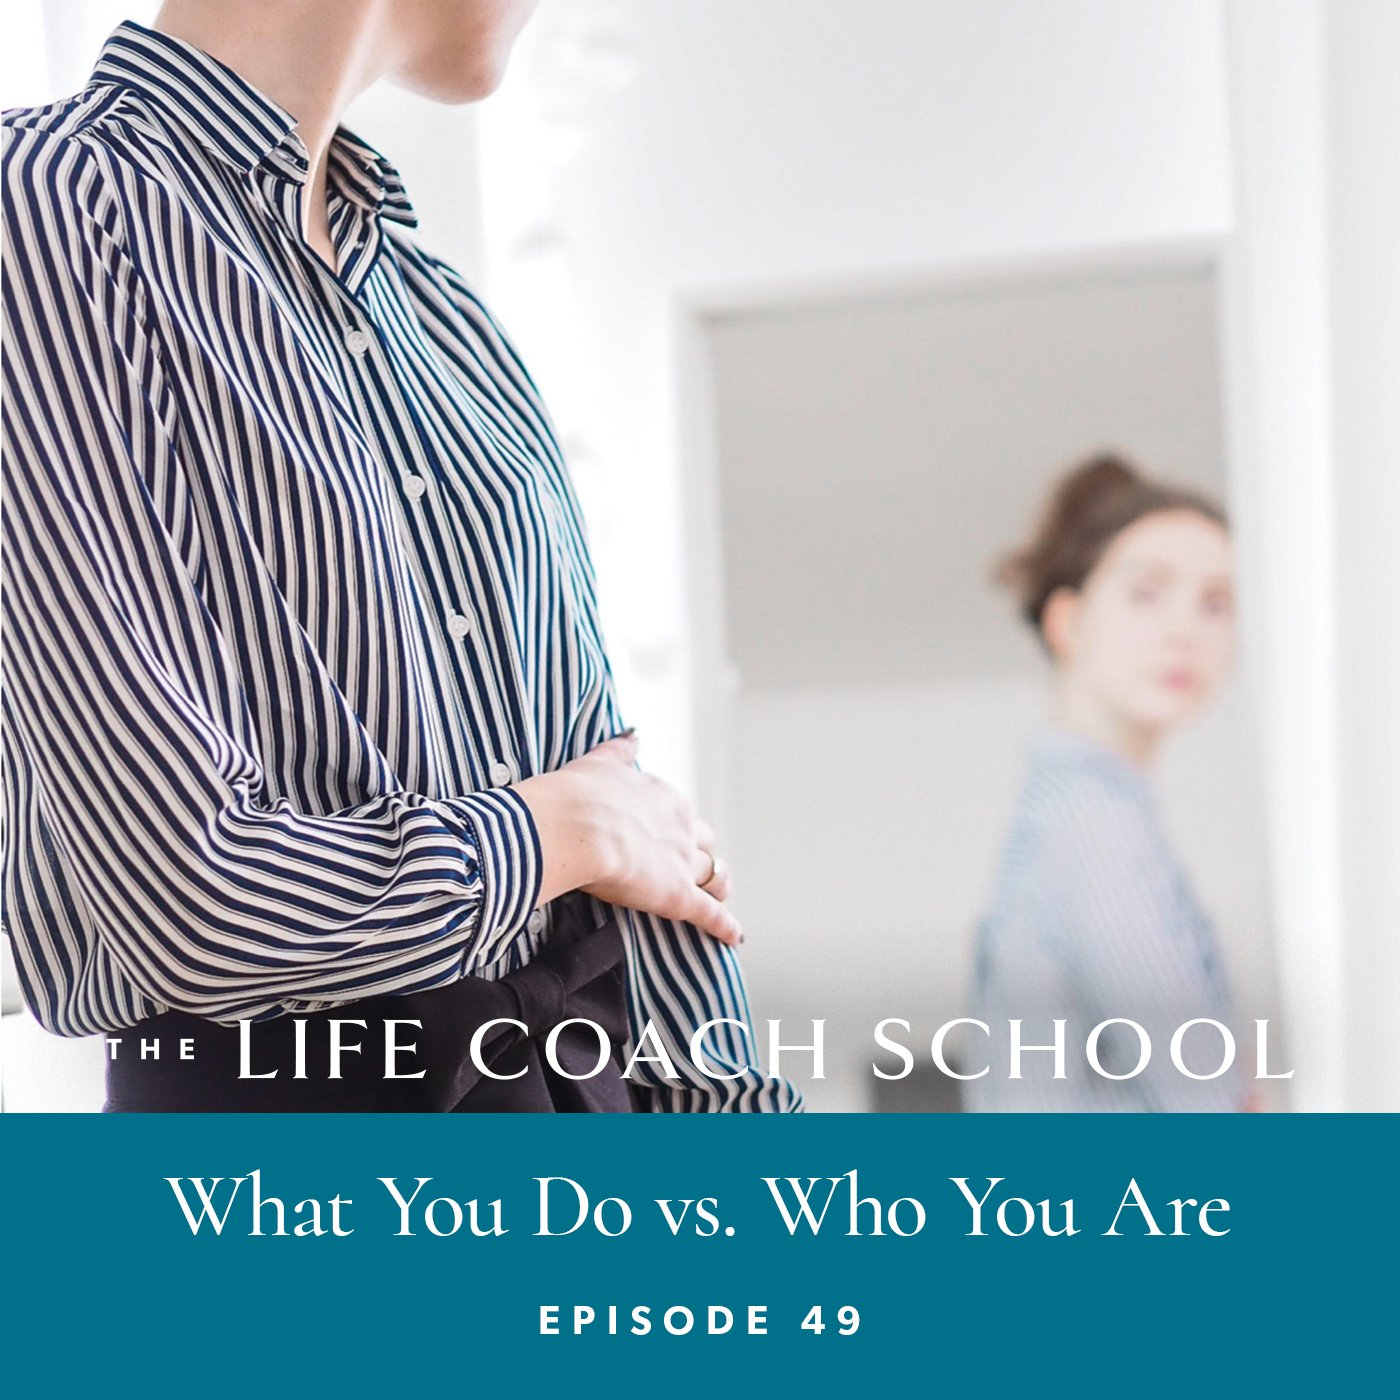 The Life Coach School Podcast with Brooke Castillo | Episode 49 | What You Do vs Who You Are